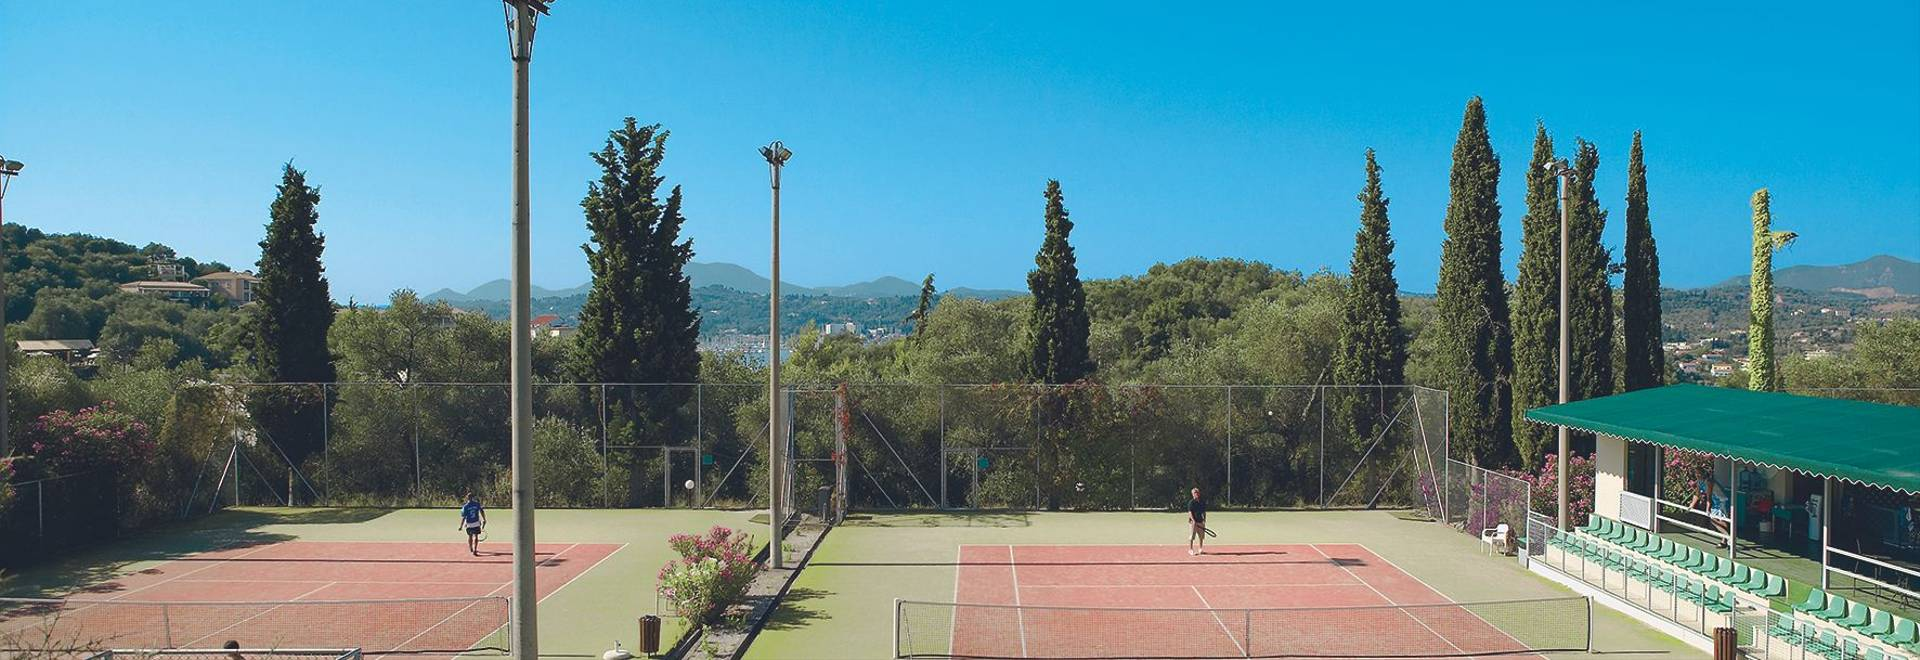 7 Tennis Courts Amidst The Dassia Pine Forest